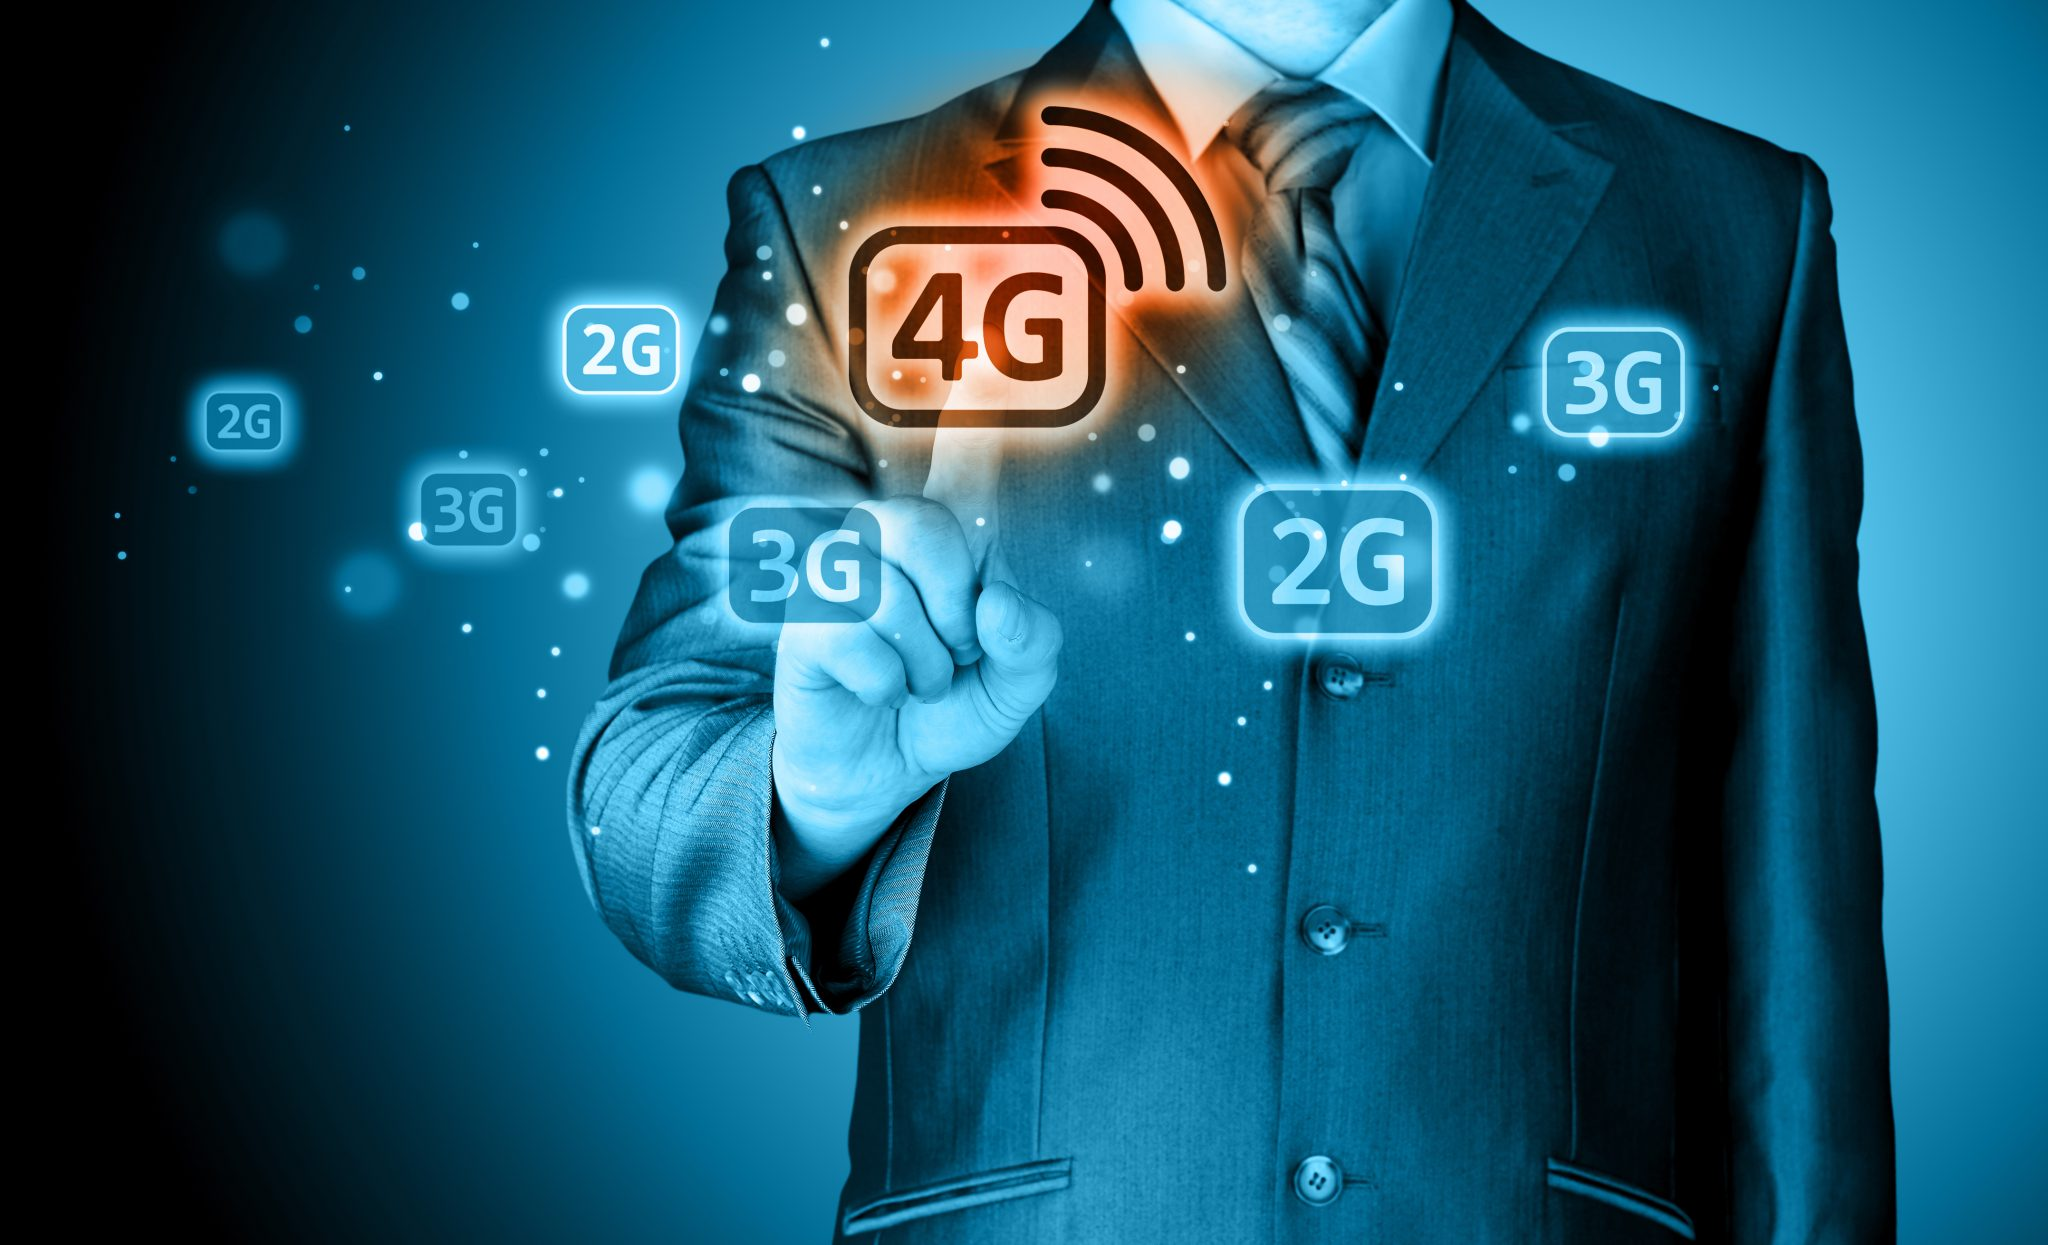 4G LTE Network Expands Across the Country - What It Means for You